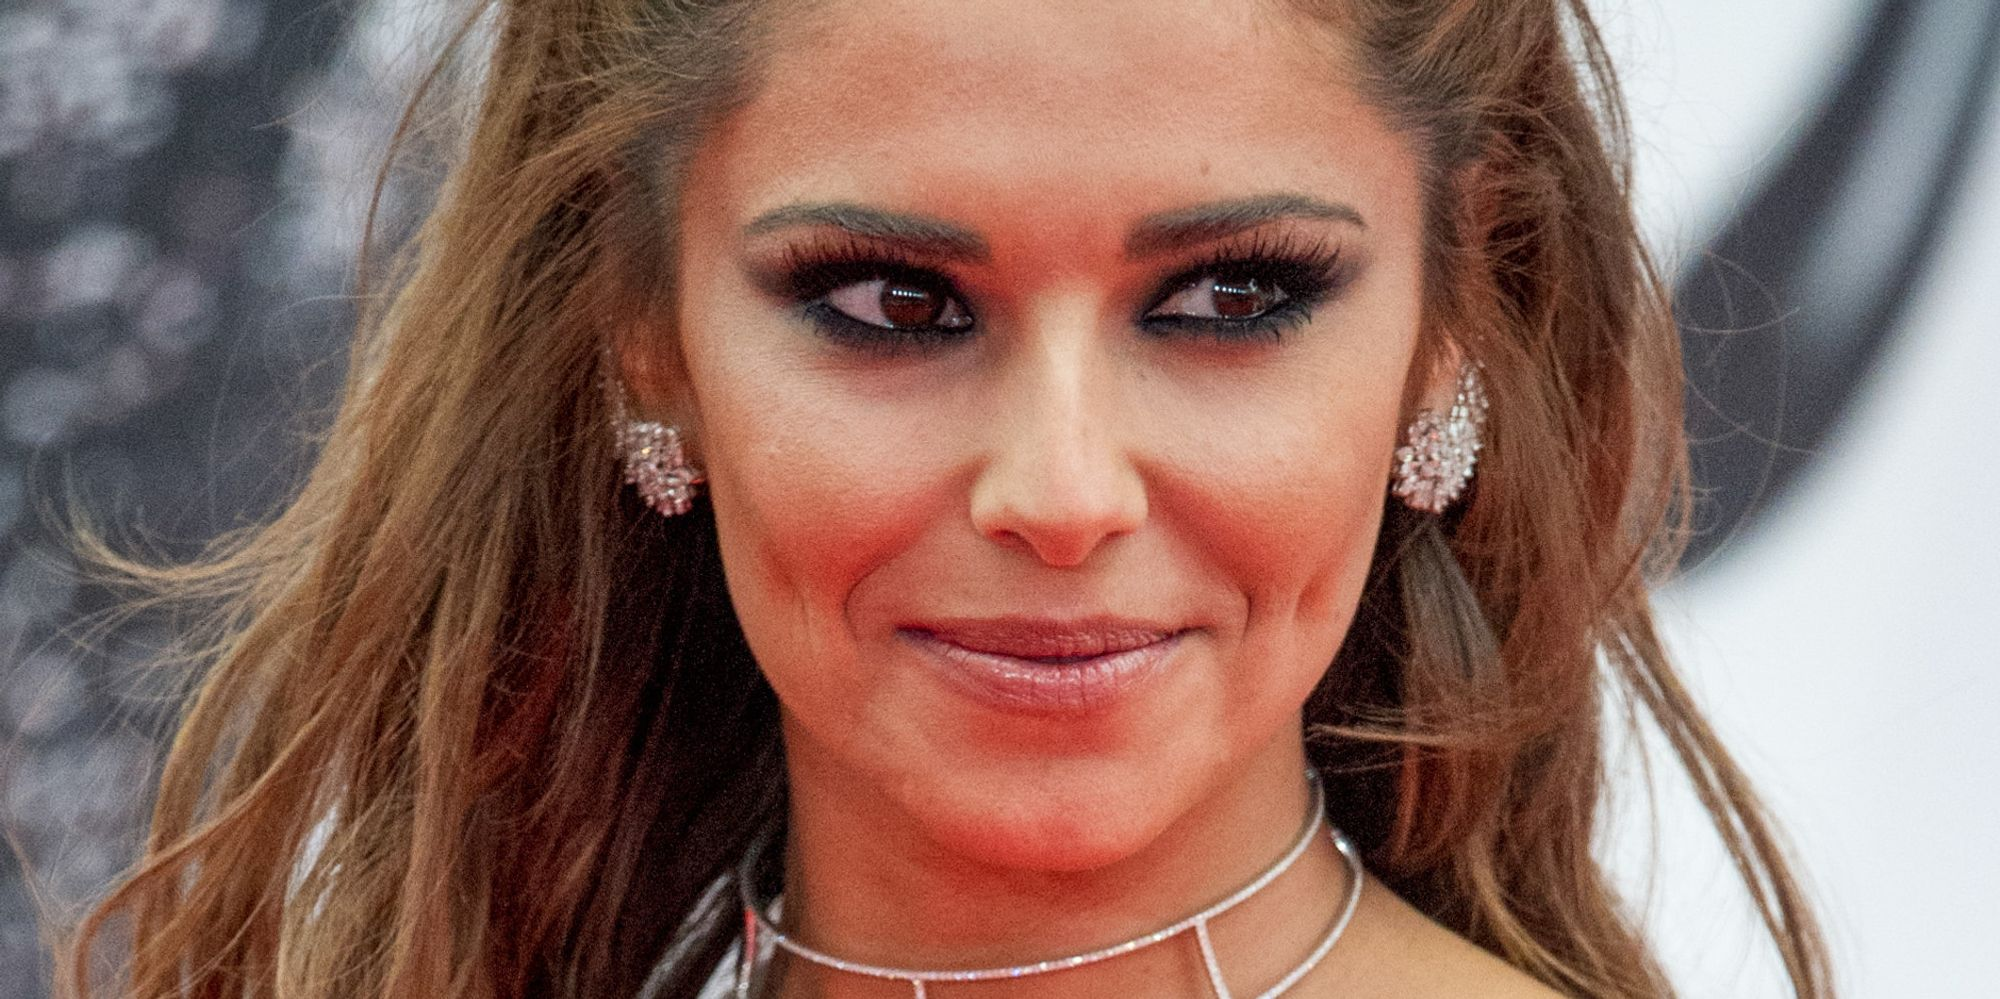 Cheryl Drops Surname Fernandez-Versini 'In Bid To Move On ... Cheryl Cole